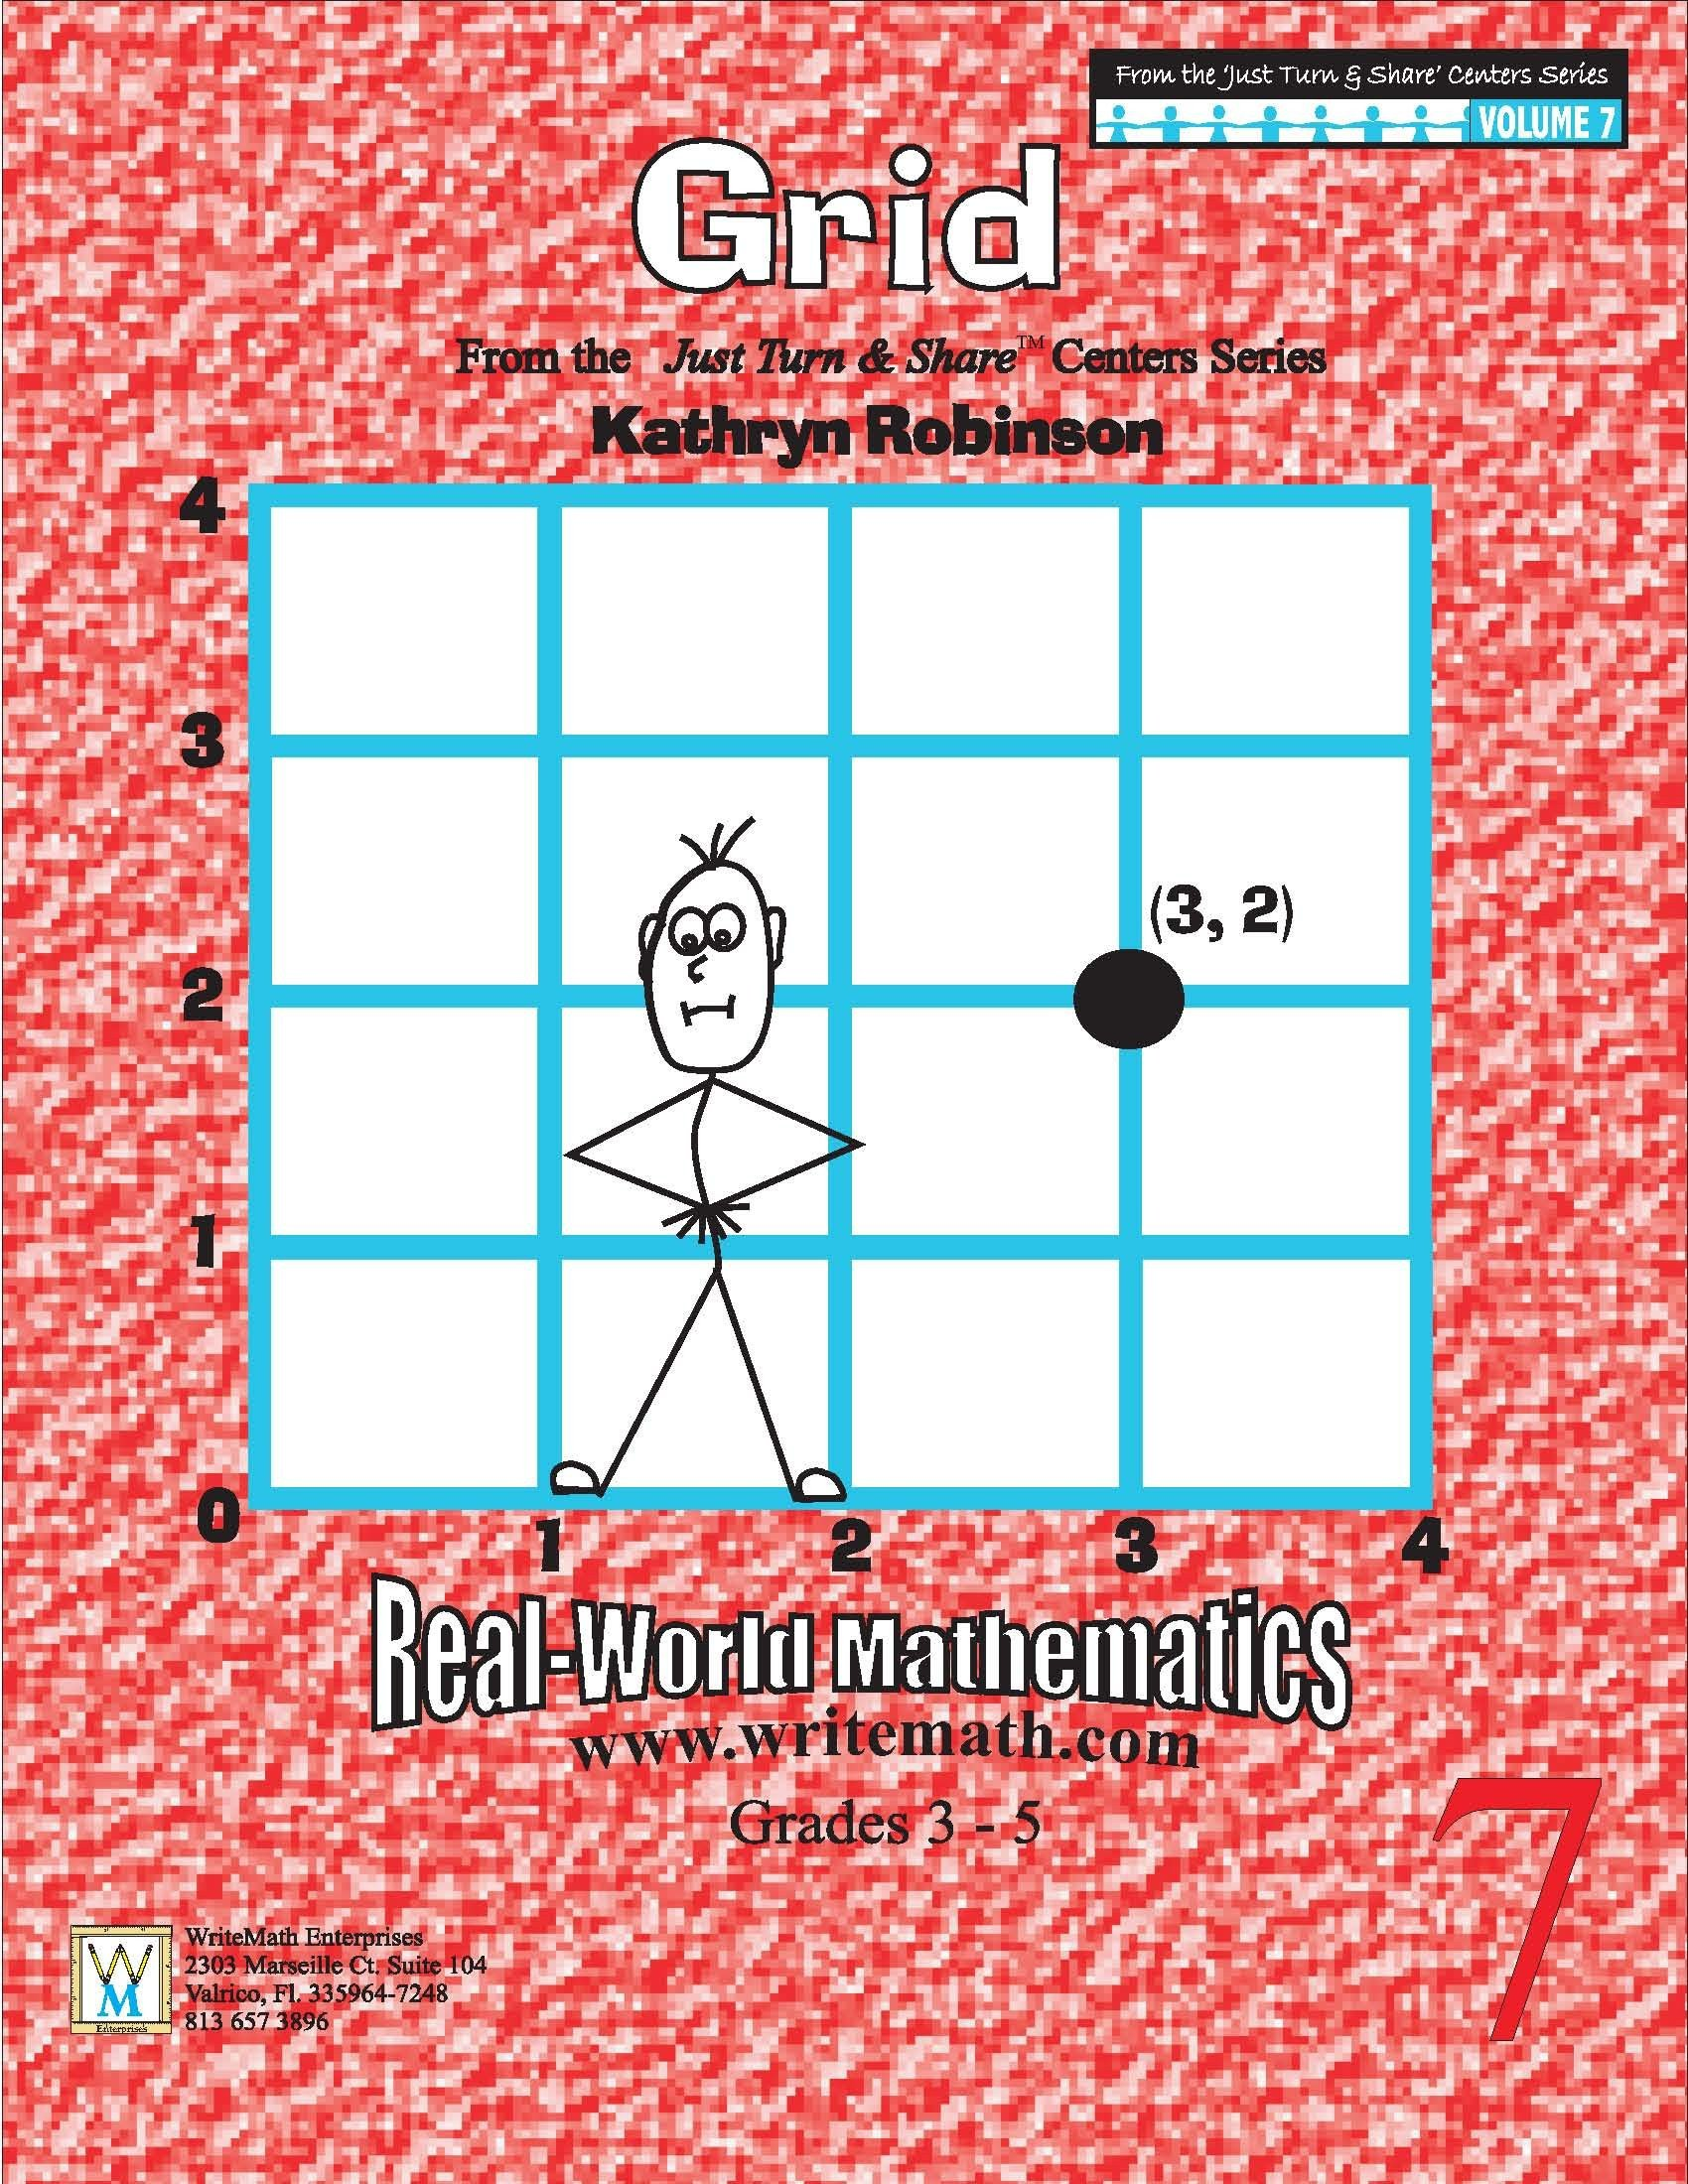 Coordinate Grid Worksheet 5th Grade Coordinate Grid Worksheets 3rd 4th 5th Grade Math Just